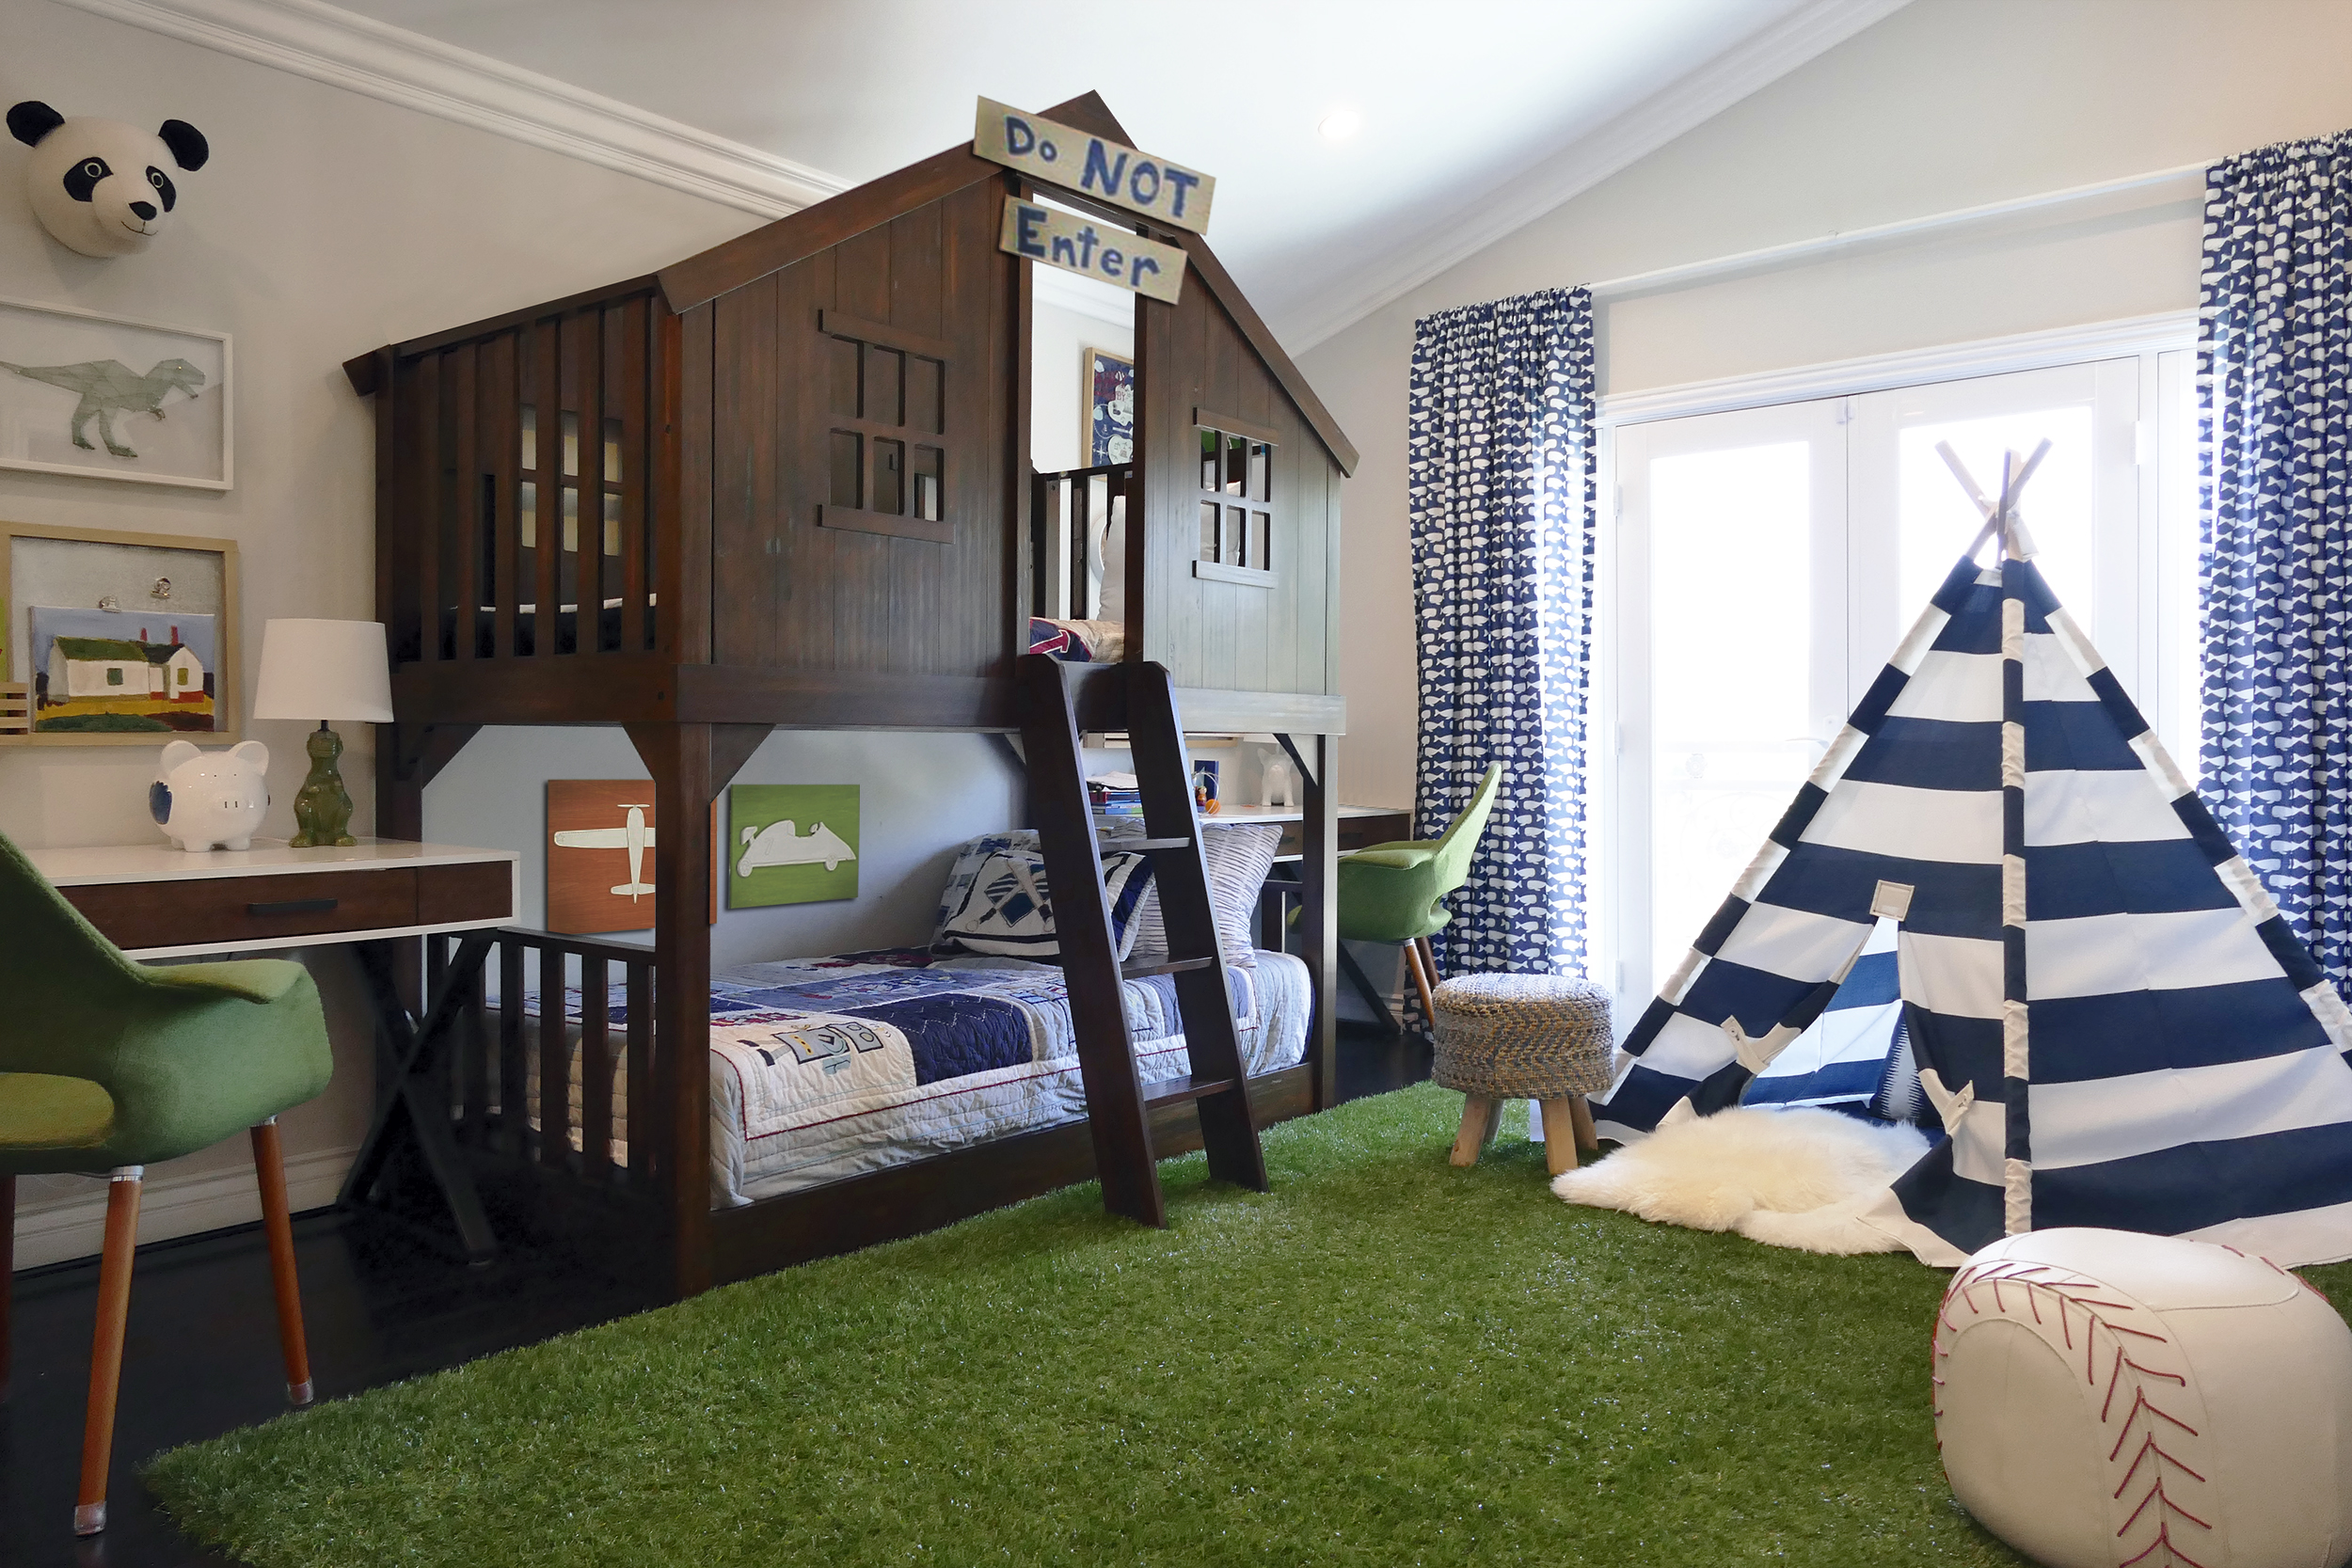 Tree House Inspired Boy's Room